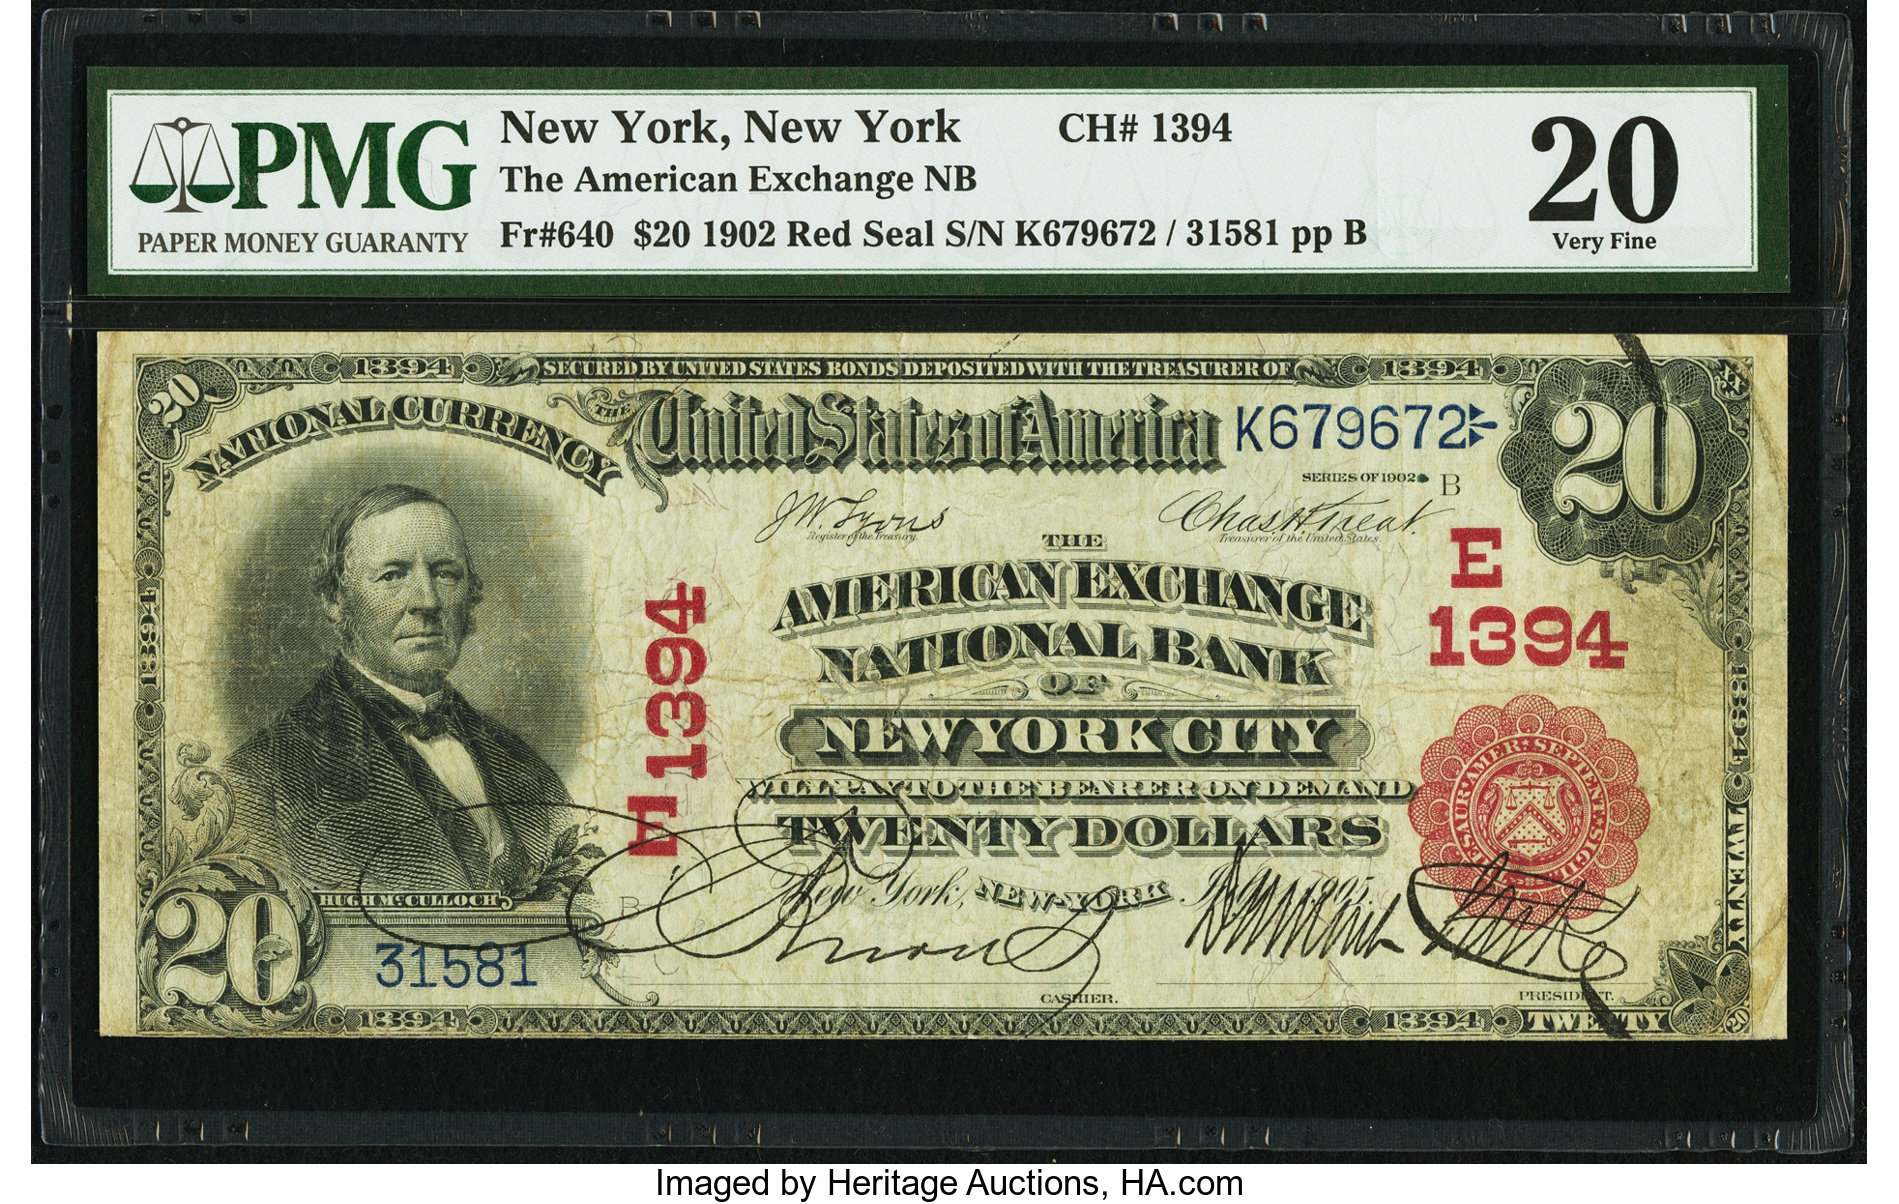 sample image for 1902 3rd Charter Period $20  Red Seal 1st Issue (Fr.# 640)